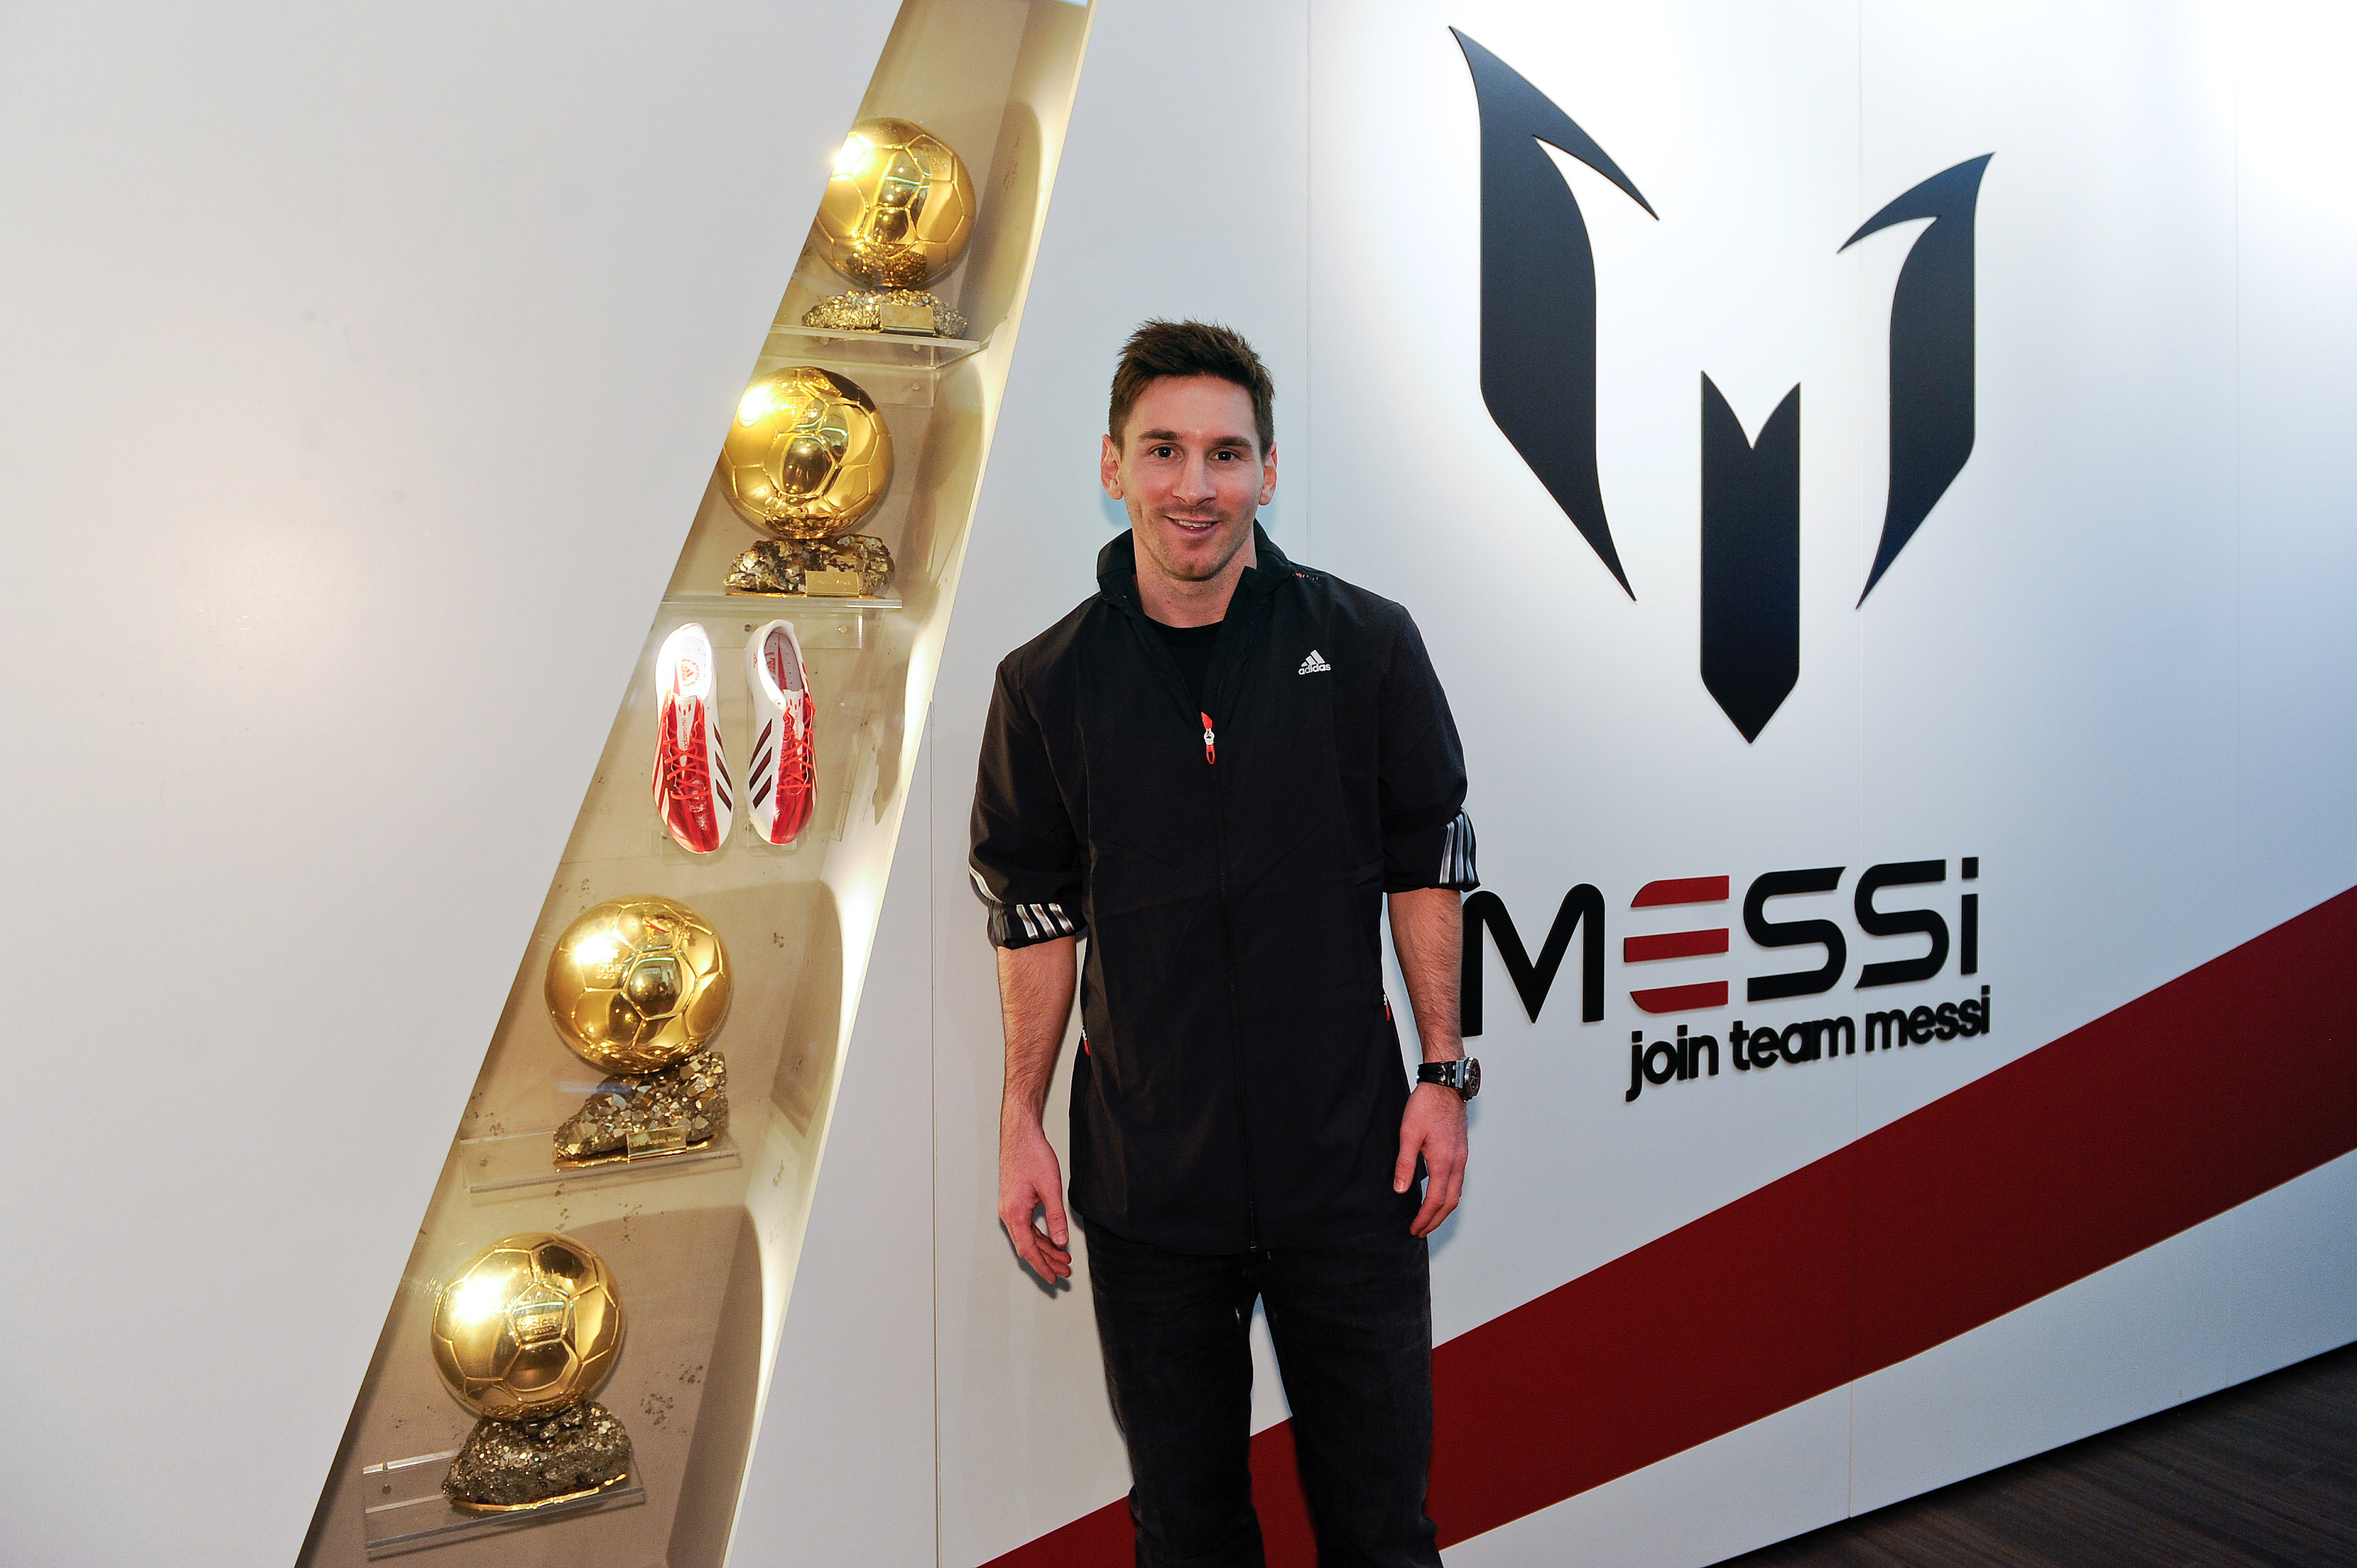 It Is A Rare Accolade  With Messi Joining A Very Small Group Of Iconic